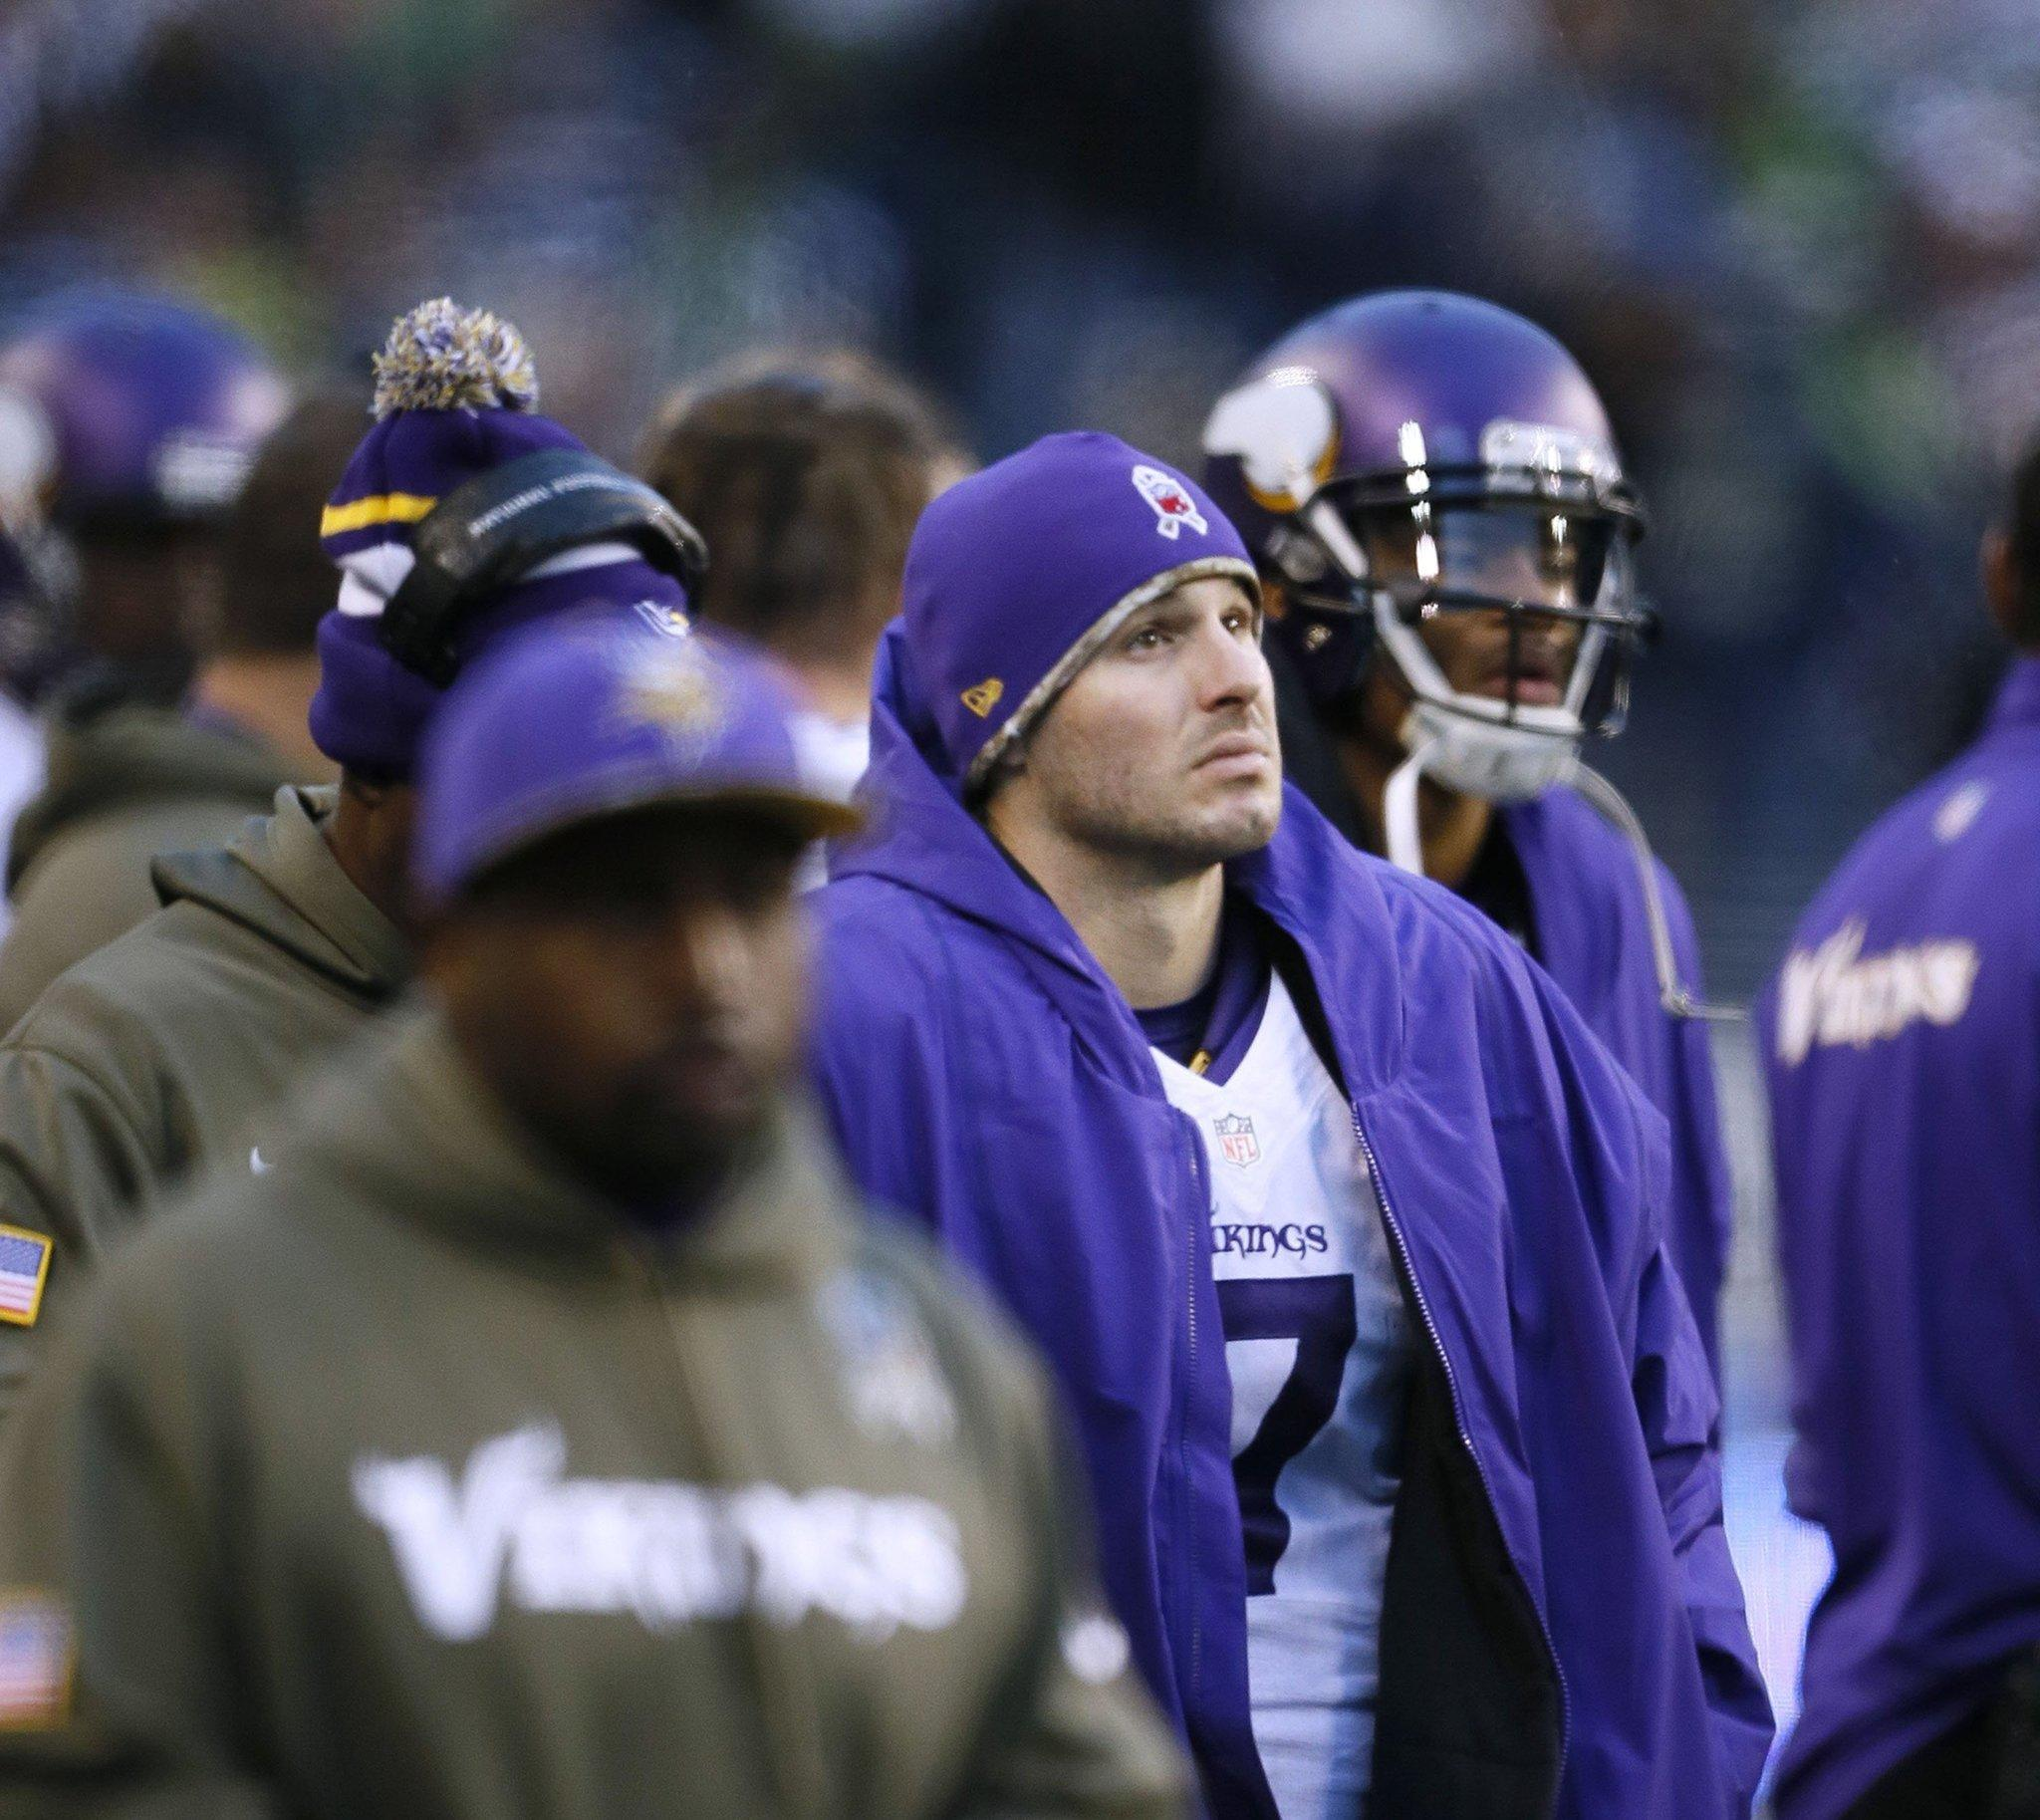 Christian Ponder (7) of the Minnesota Vikings was pulled from the game after throwing interceptions in the fourth quarter against the Seattle Seahawks at CenturyLink Field in Seattle on Sunday, Nov. 17, 2013.